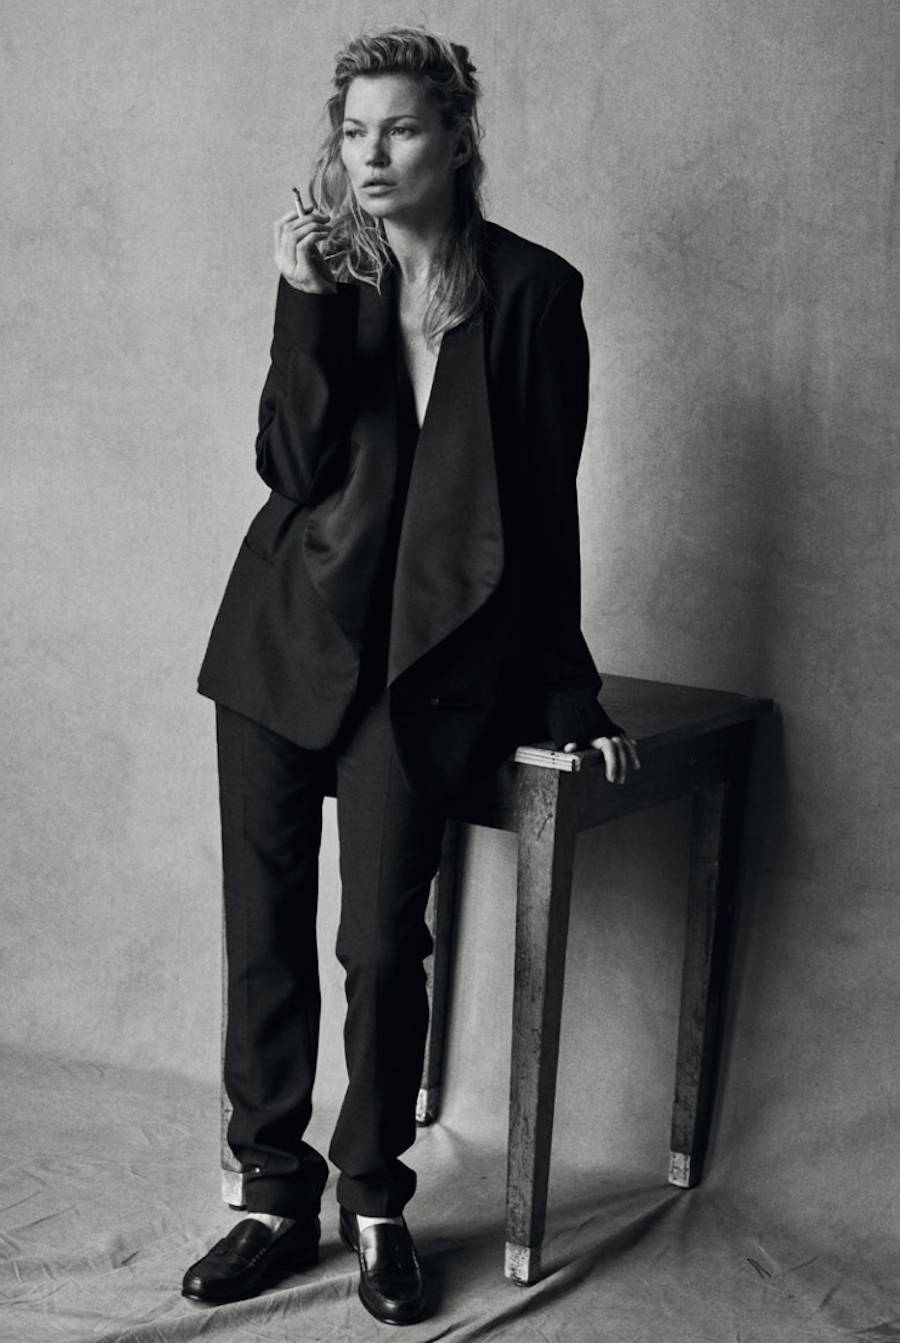 Kate Moss Unphotoshoped Portraits by Peter Lindbergh